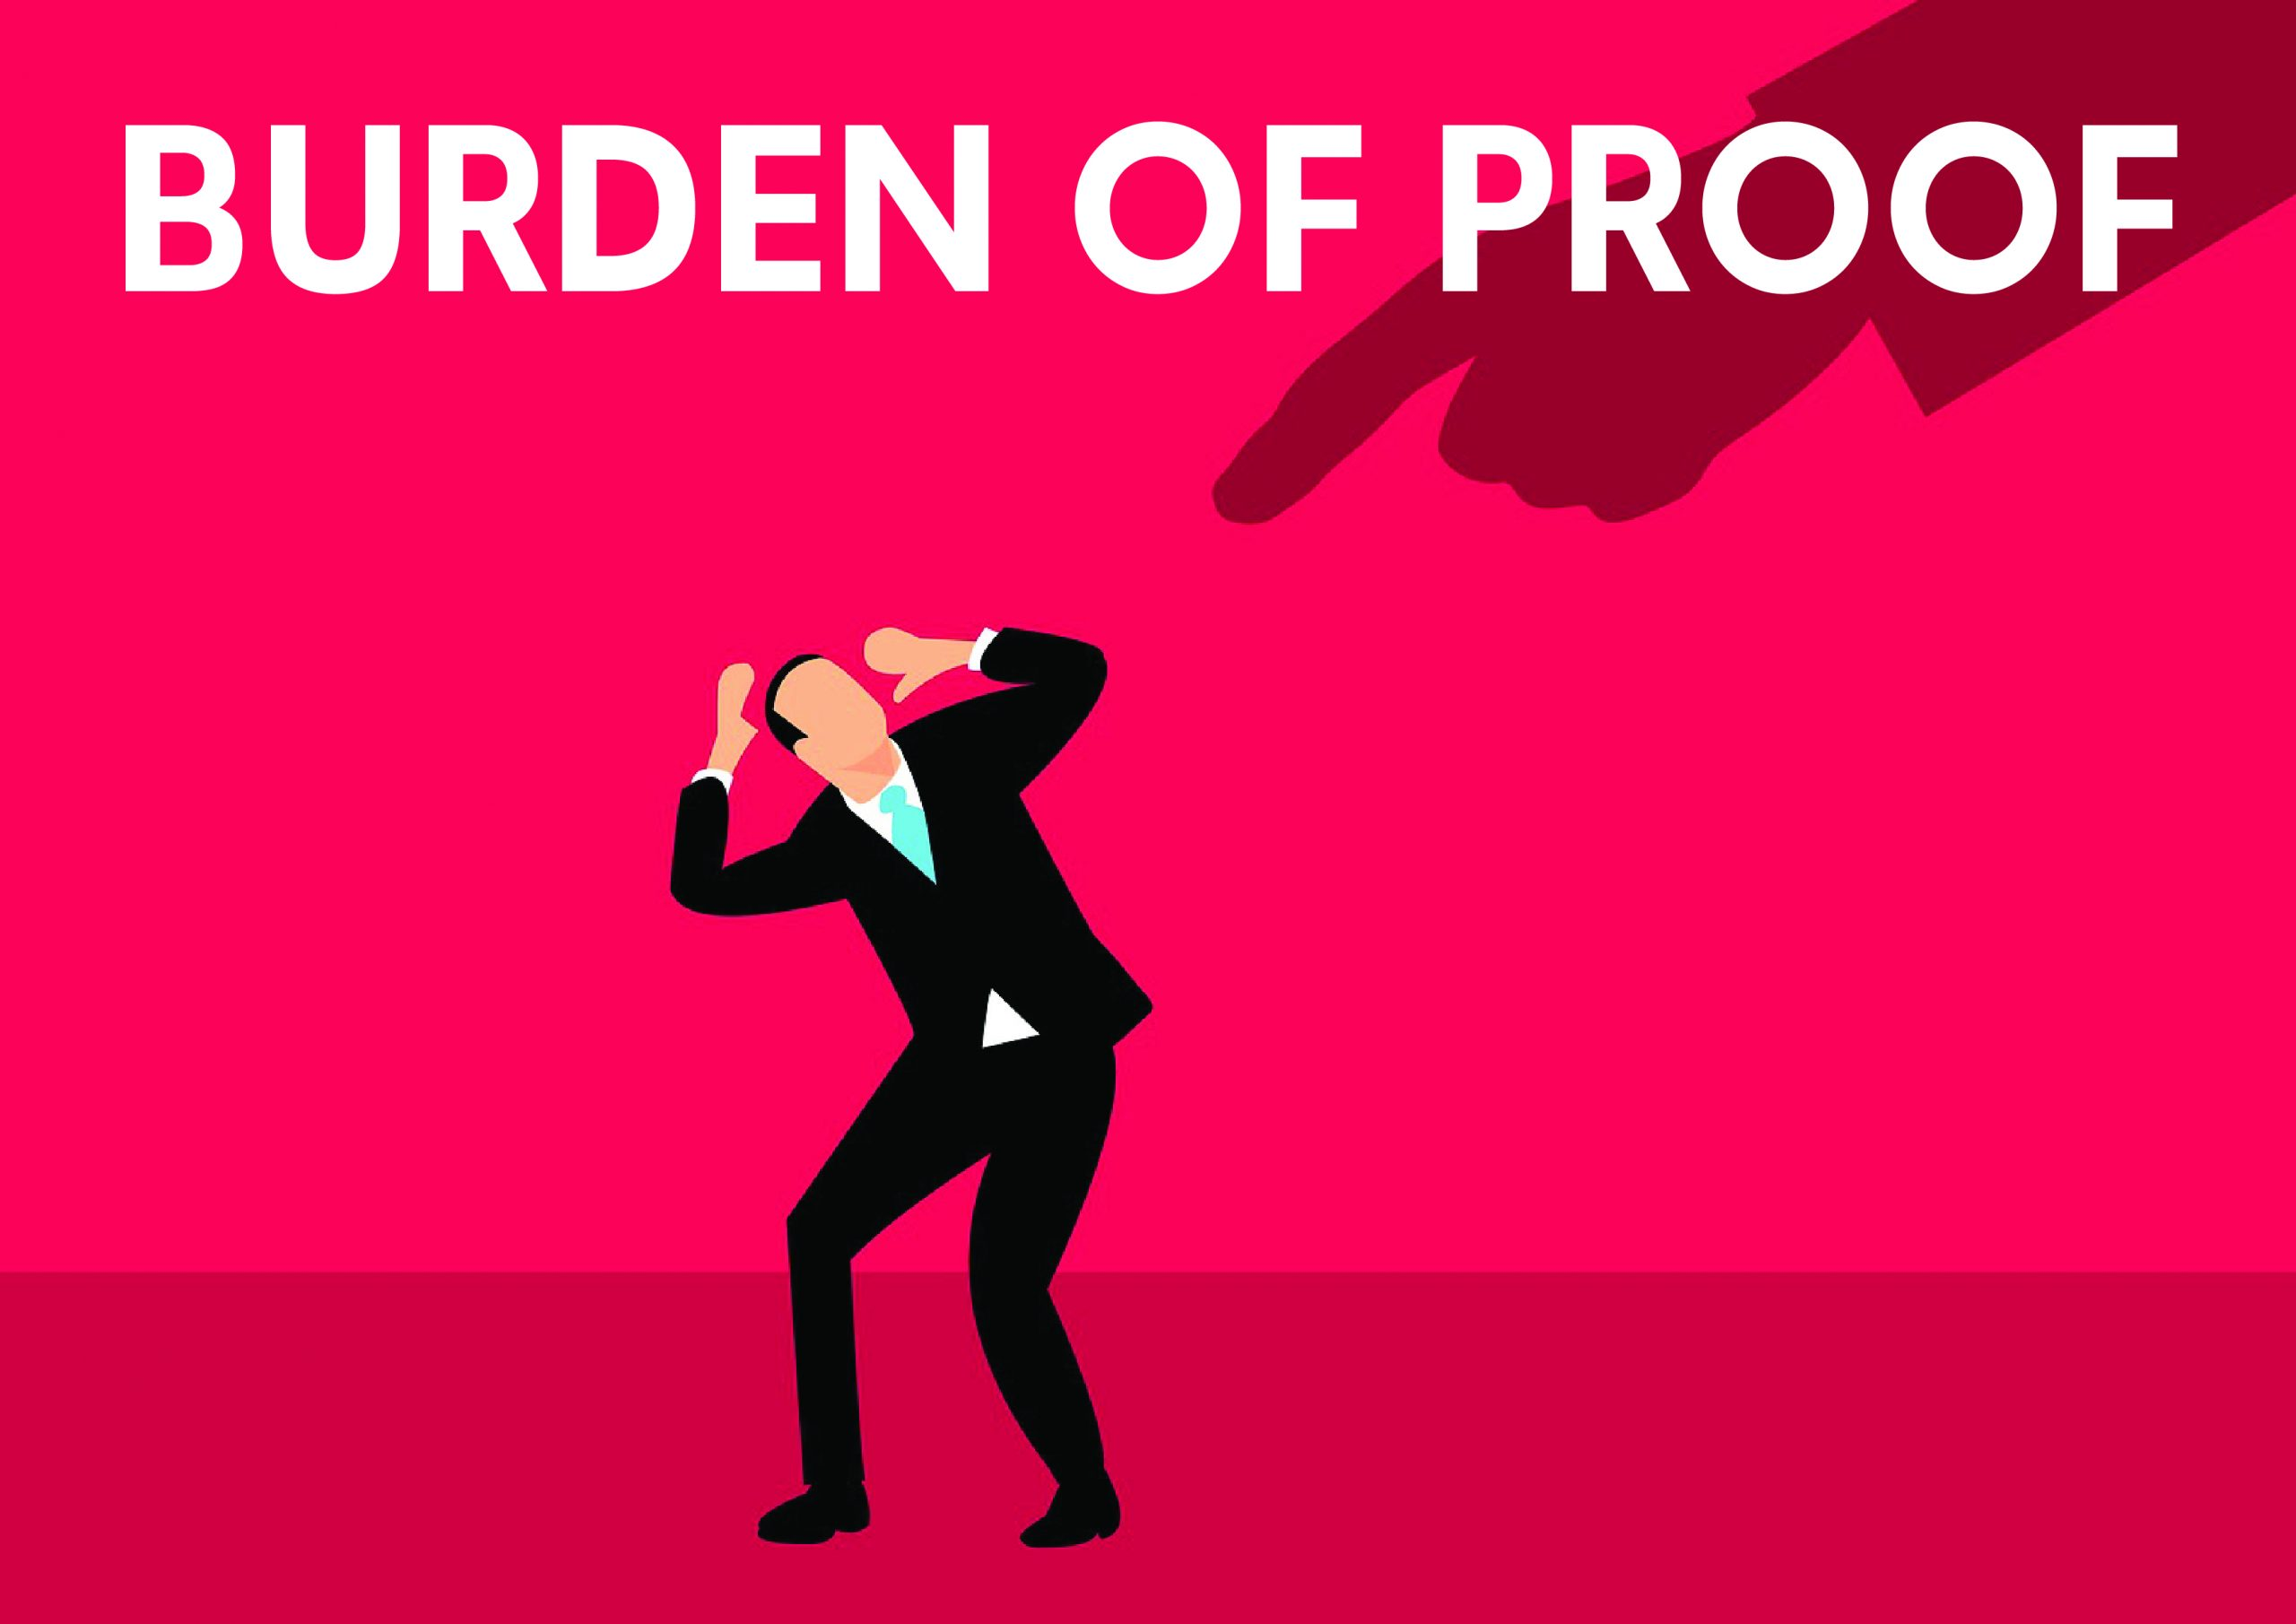 Rules relating to Burden of Proof 01 scaled